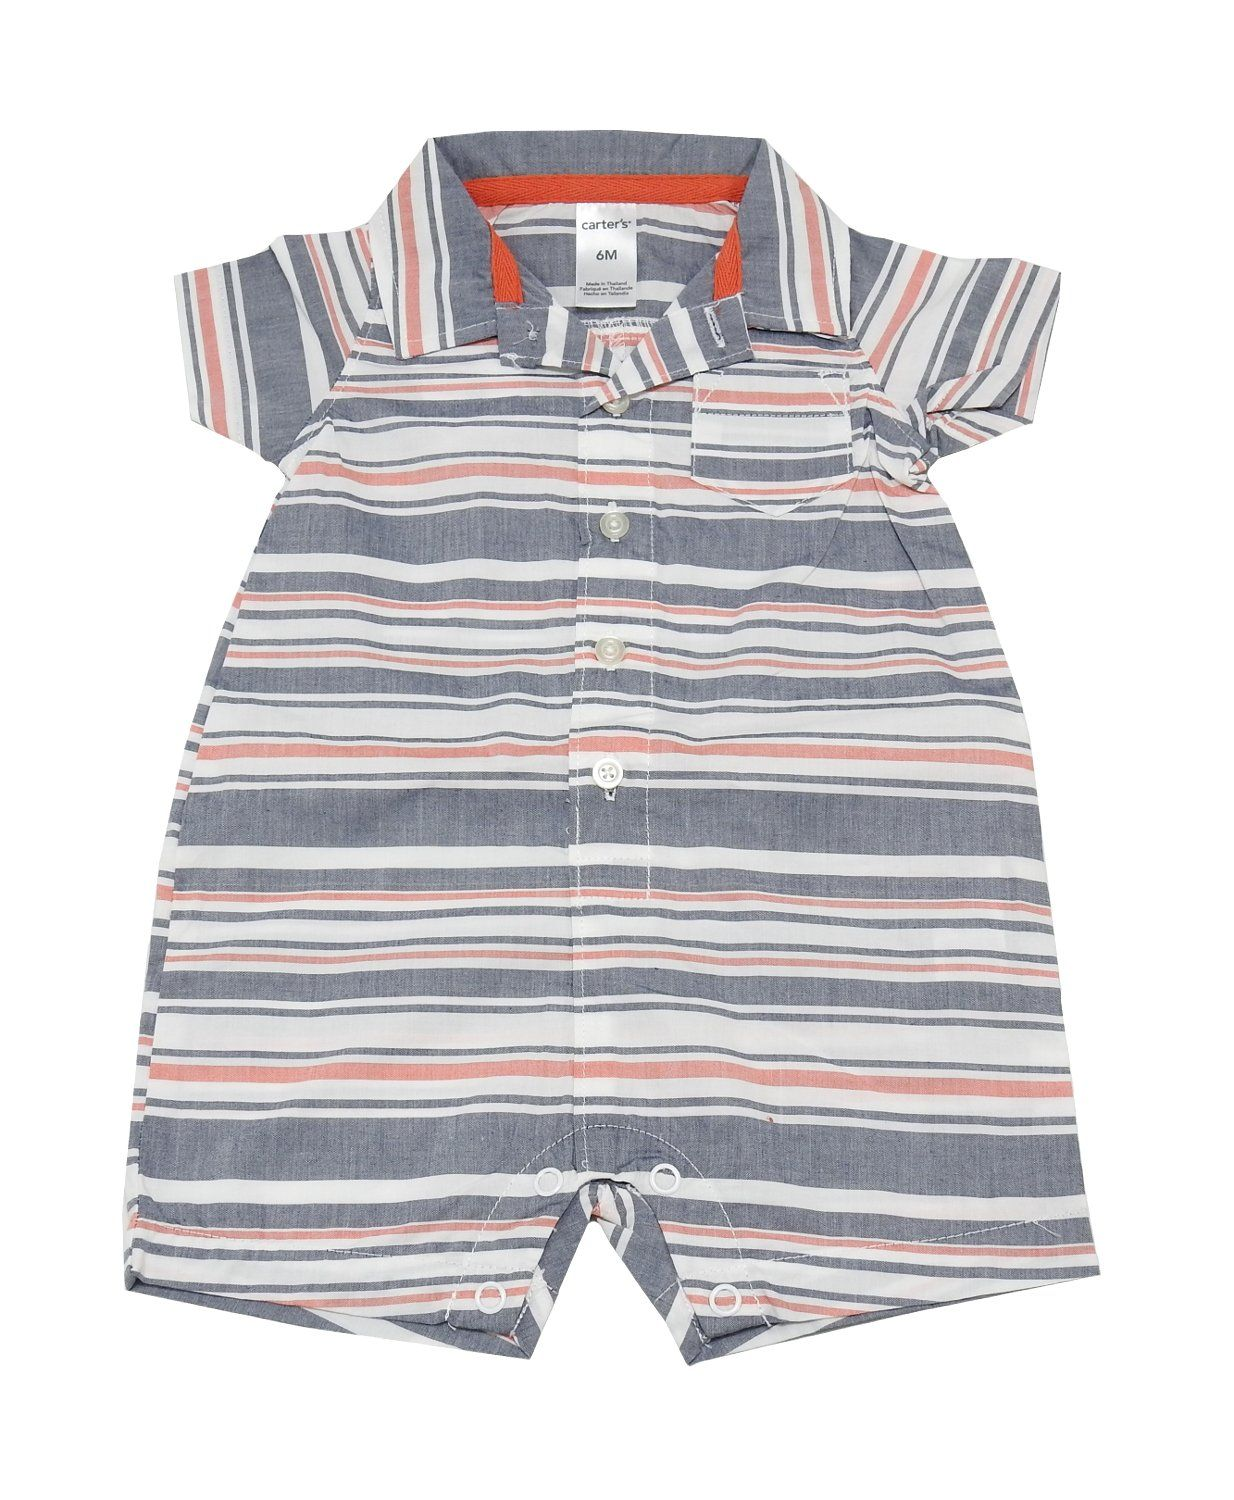 0b8e1bf62 Carter s Baby Boy Size 6 Months Striped Short Sleeve Romper